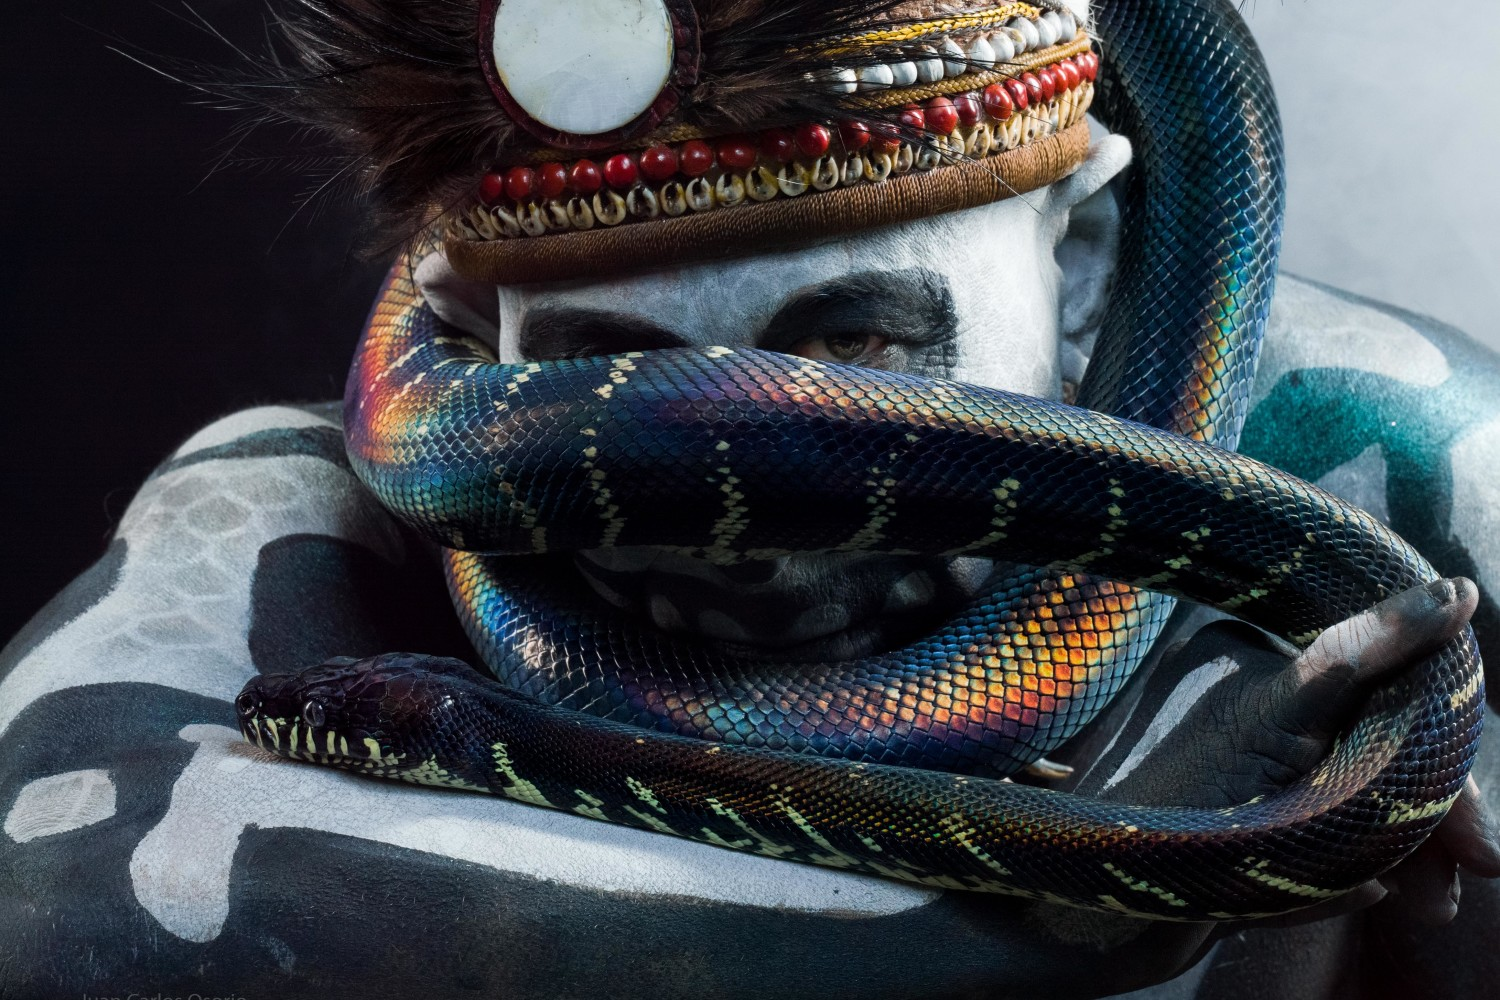 Unbelievable Portraits of a New Guinea Snake Charmer and His Python